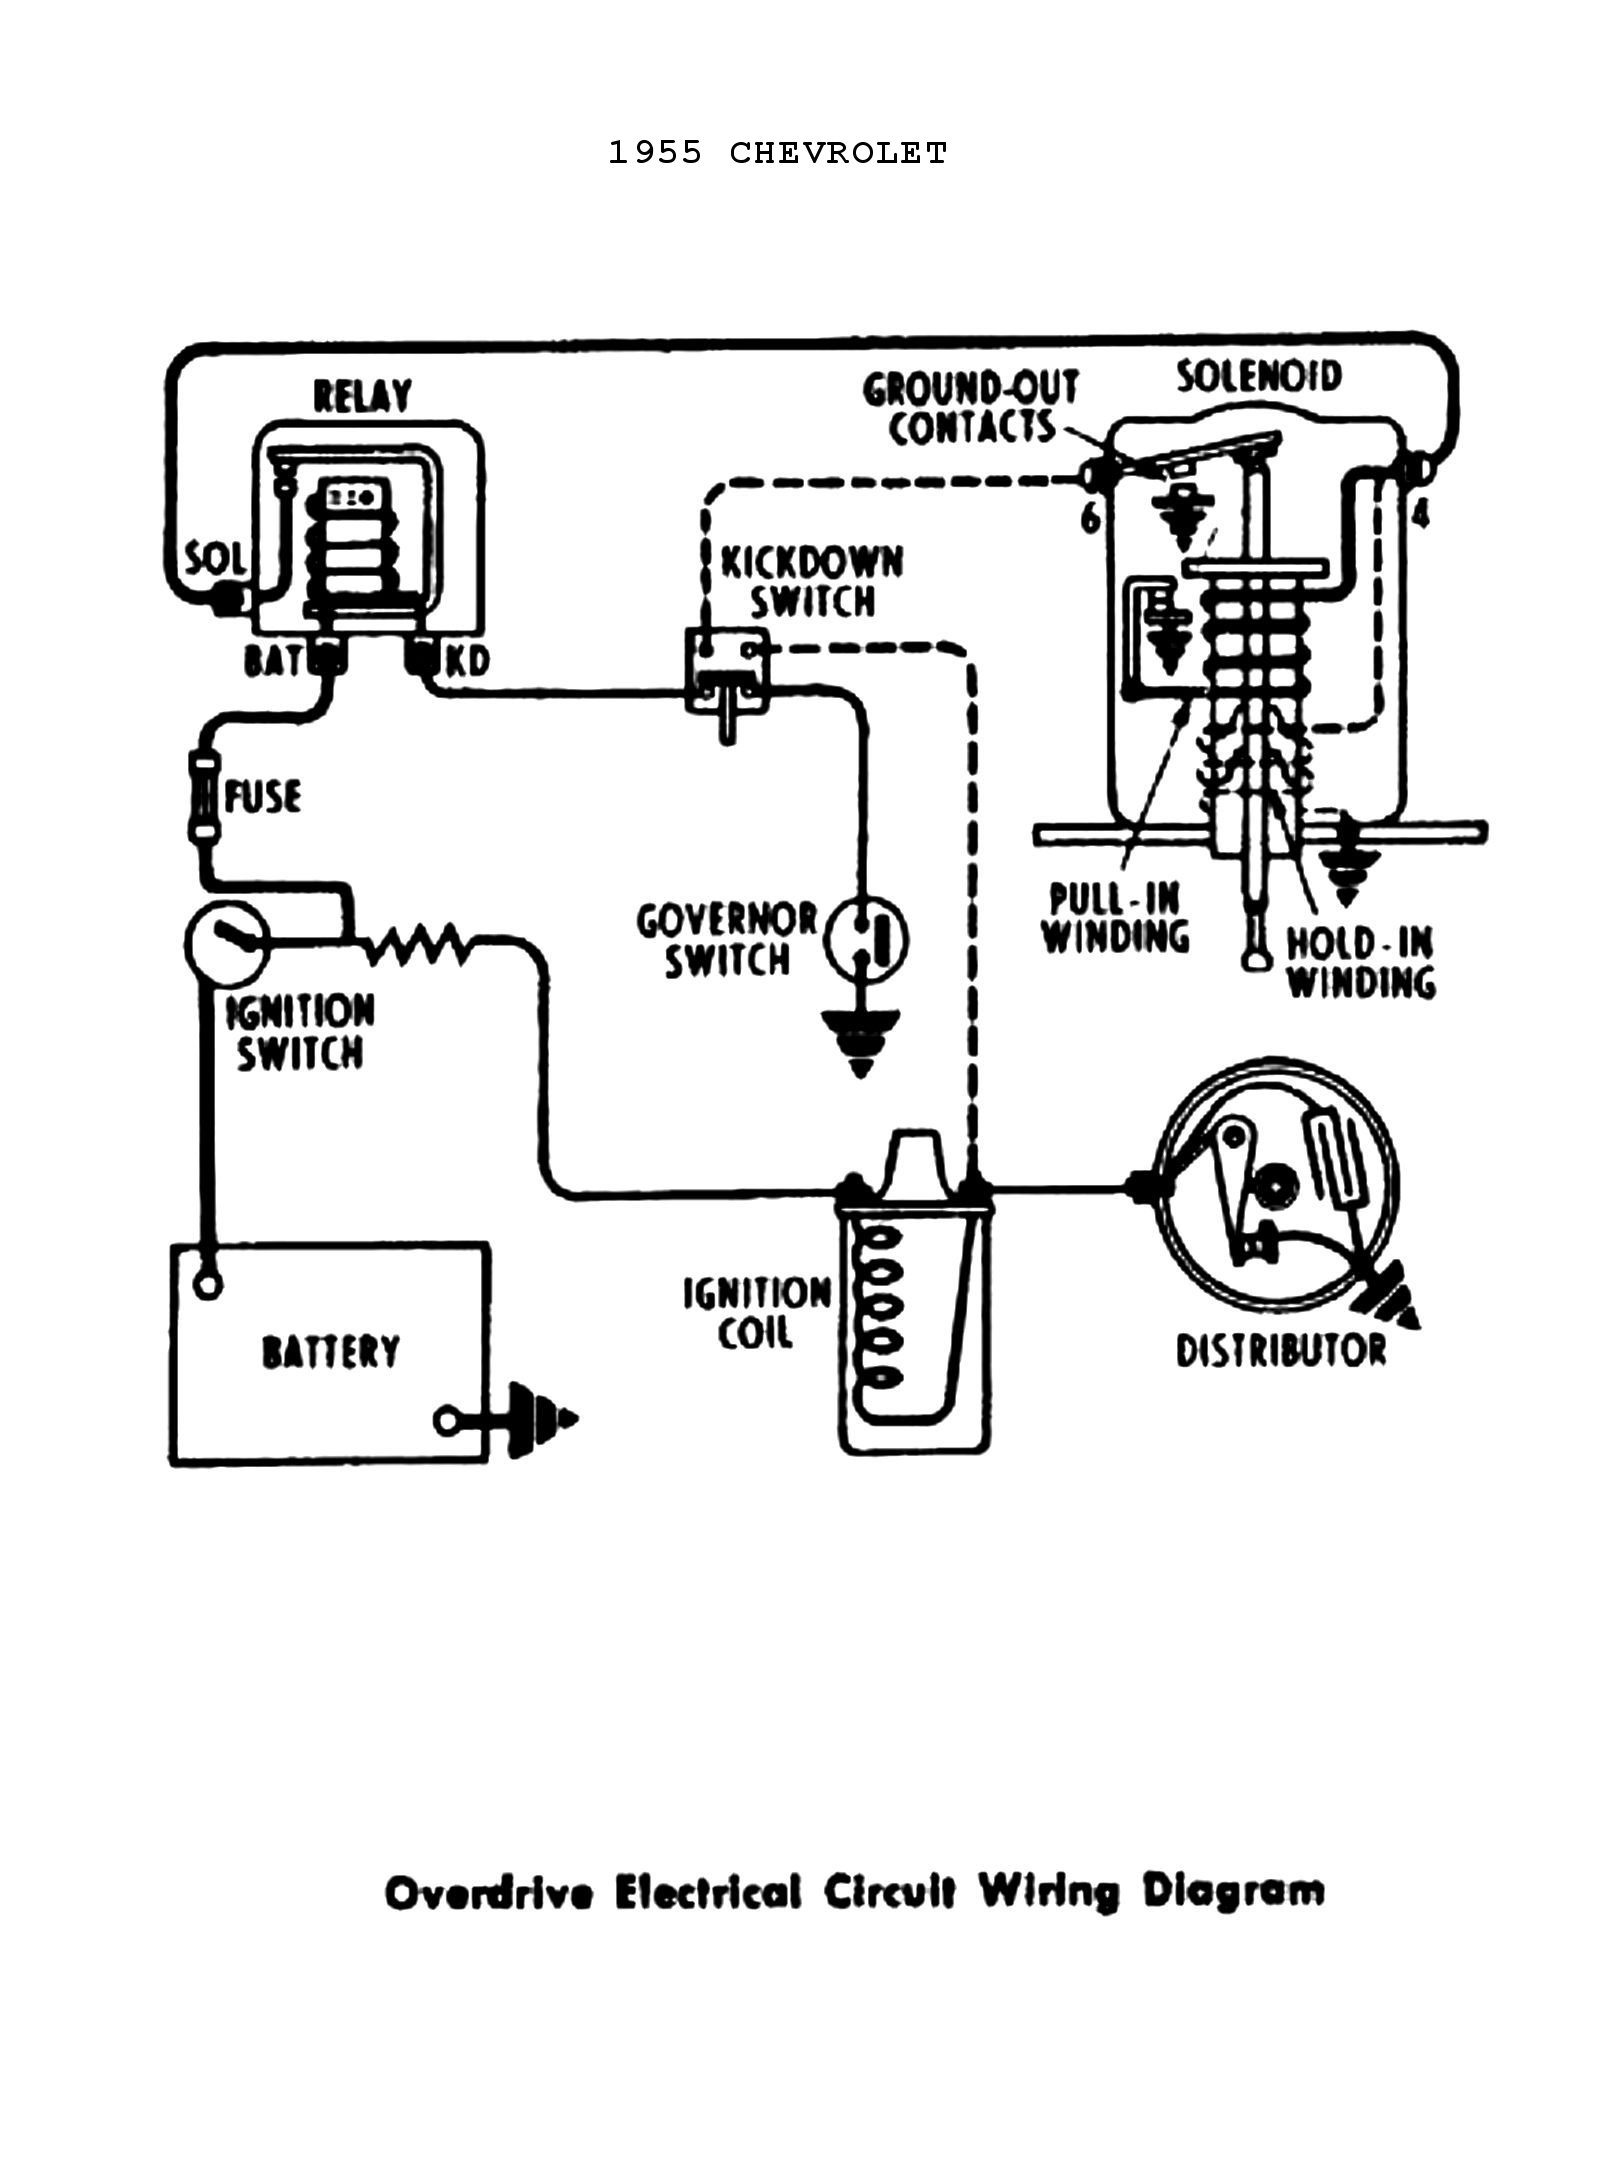 55odtrans1 chevy ignition wiring diagram ford ignition wiring diagram Accel Ignition Troubleshooting at pacquiaovsvargaslive.co